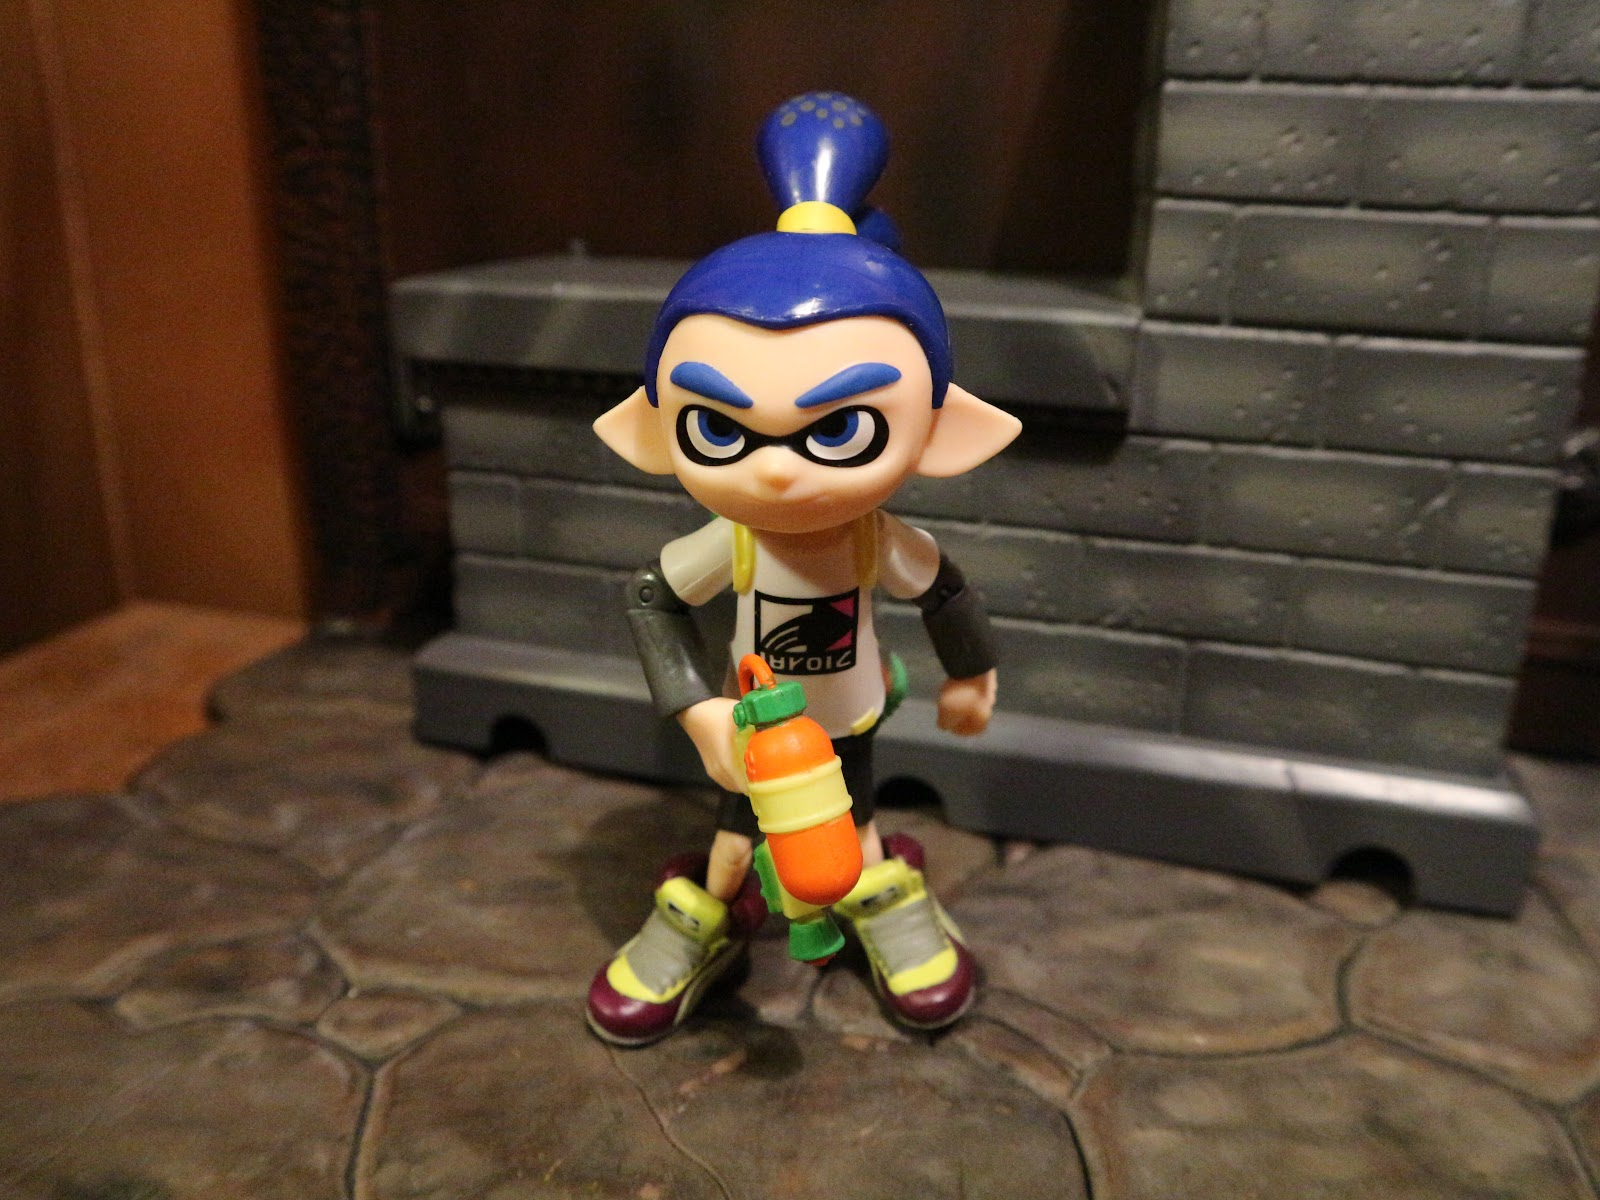 Action Figure Review Inkling Boy From World Of Nintendo By Jakks Pacific